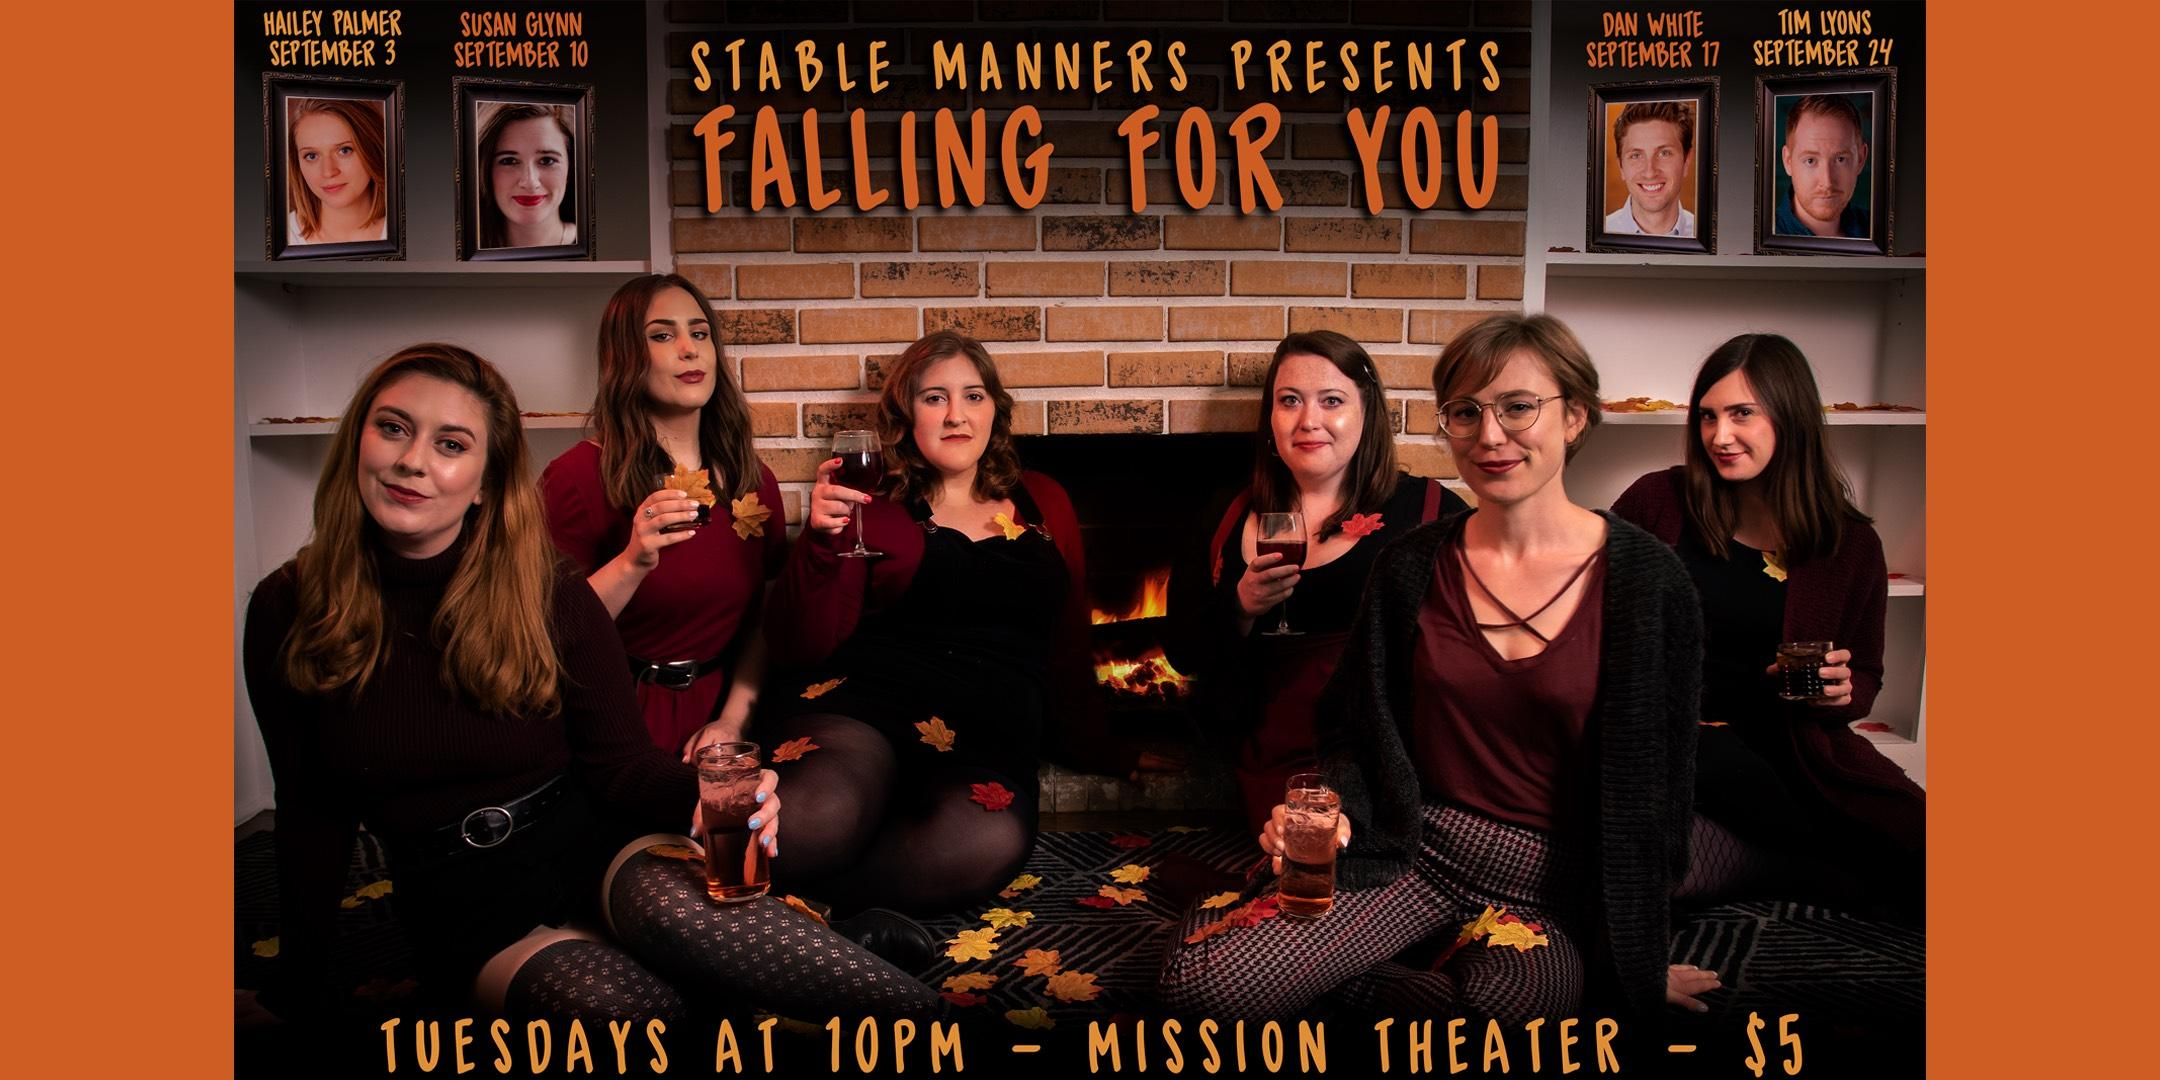 Stable Manners Presents: Falling For You, feat. Julia Morales